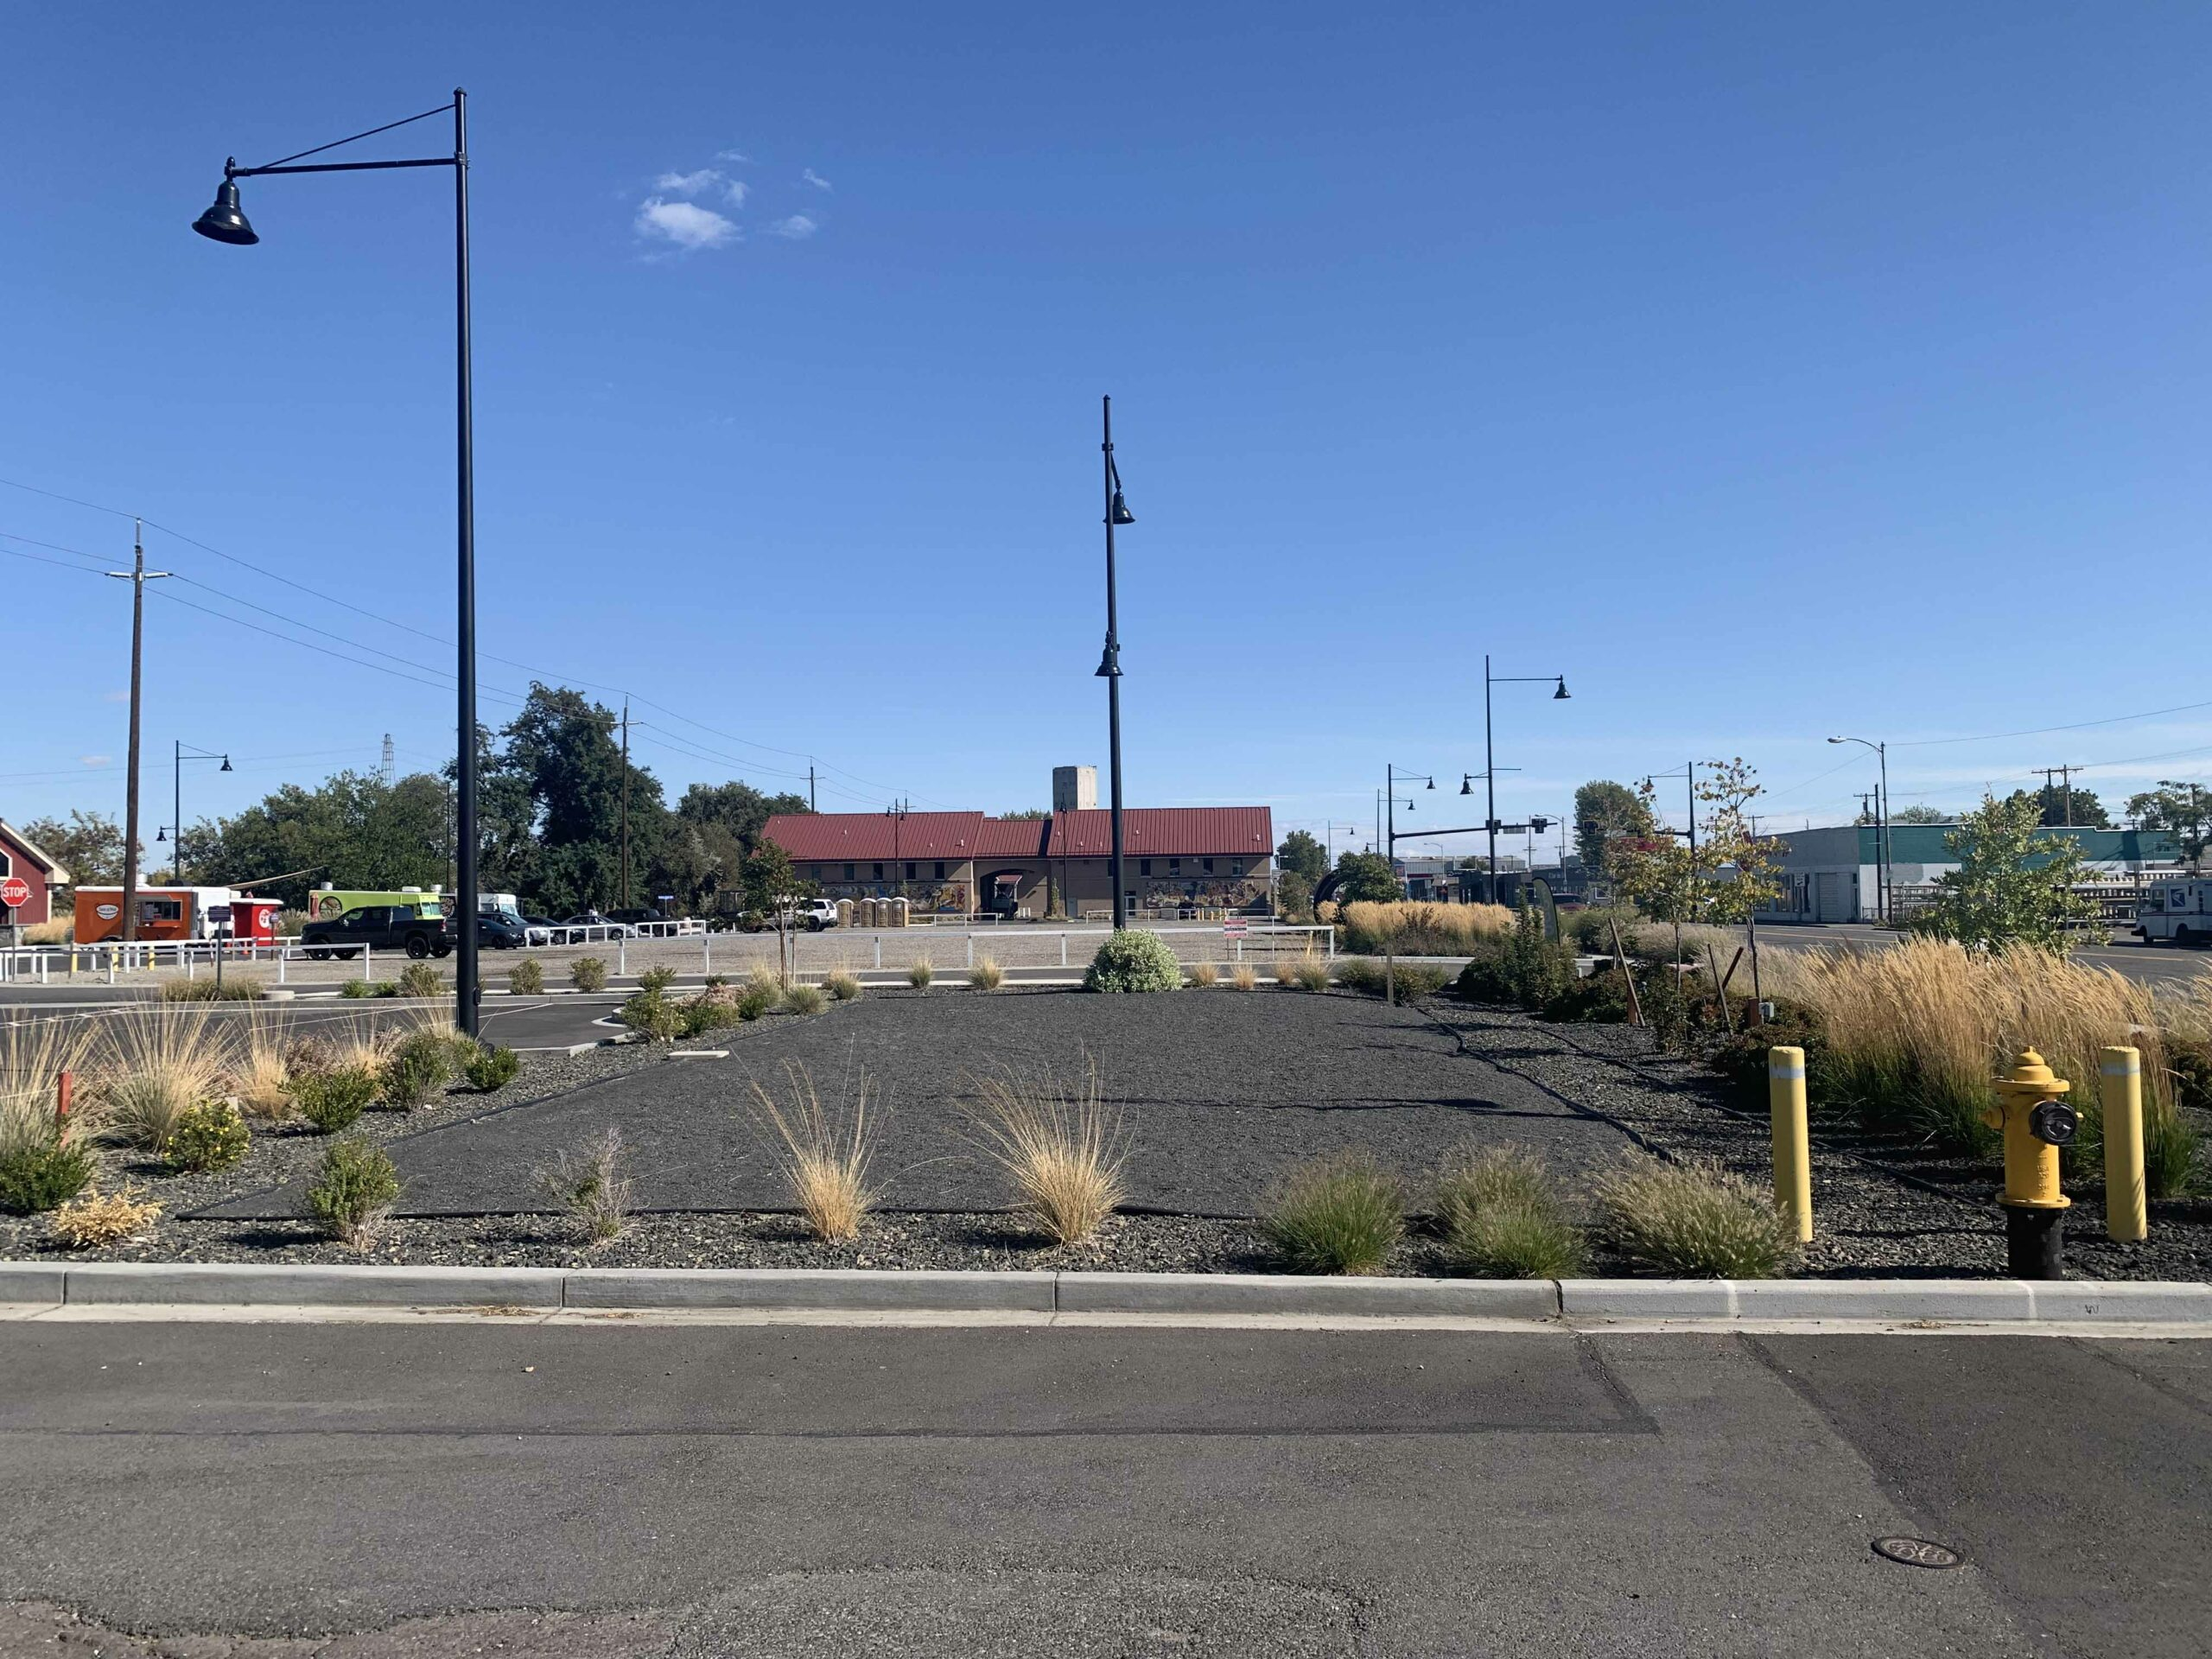 215 E. Columbia Drive parcel at Columbia Gardens.